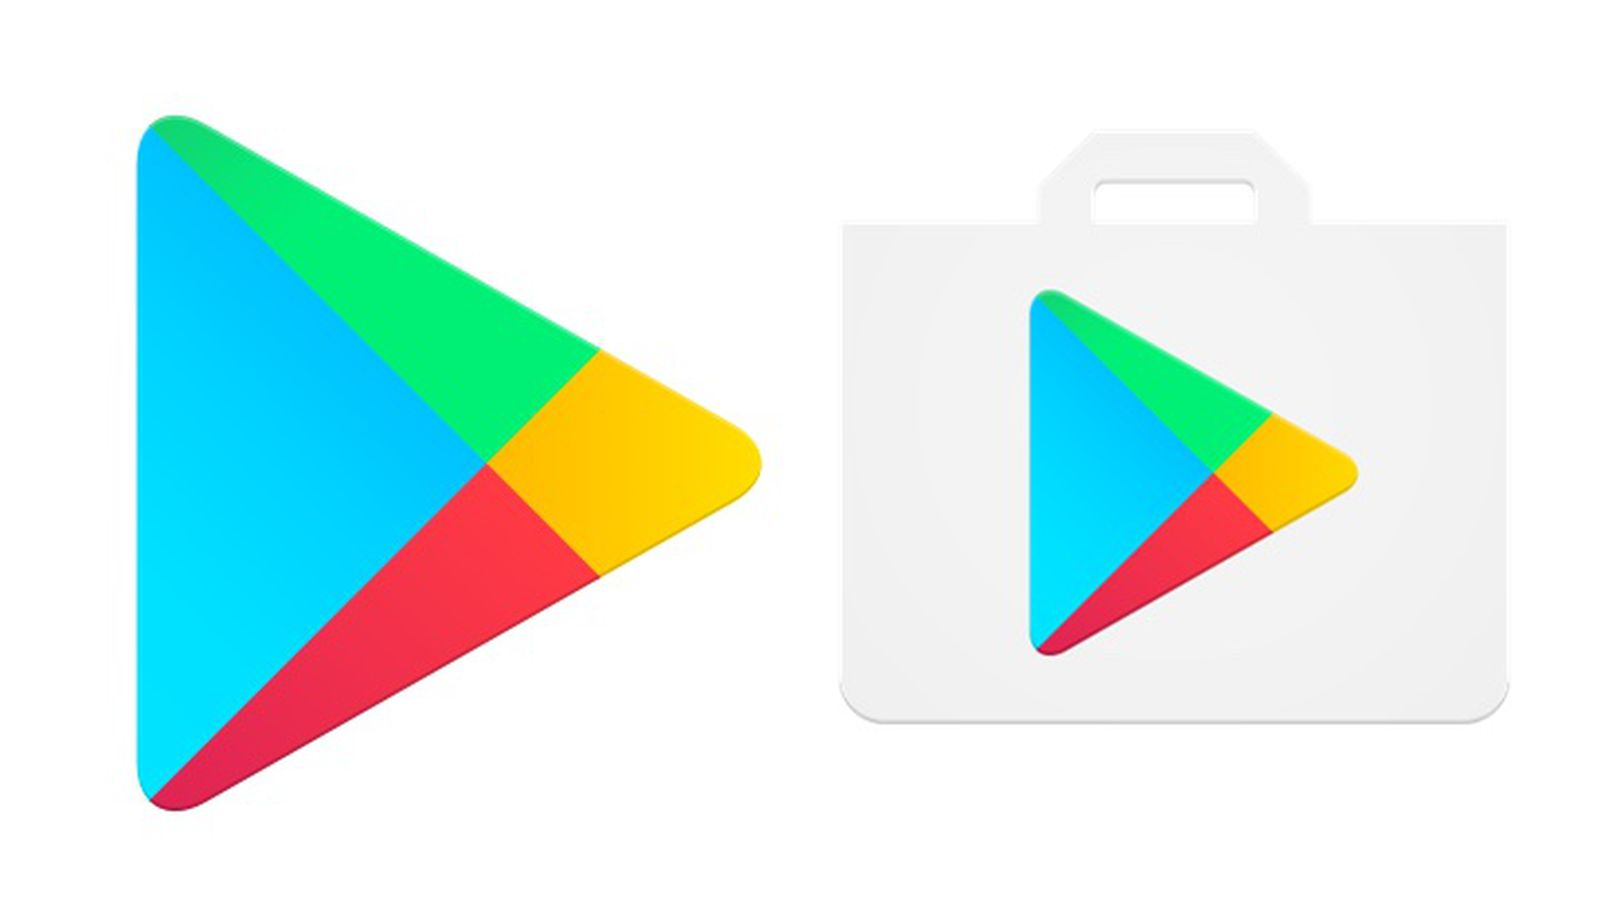 Playstore Google Drops The Shopping Bag From Play Store Icon